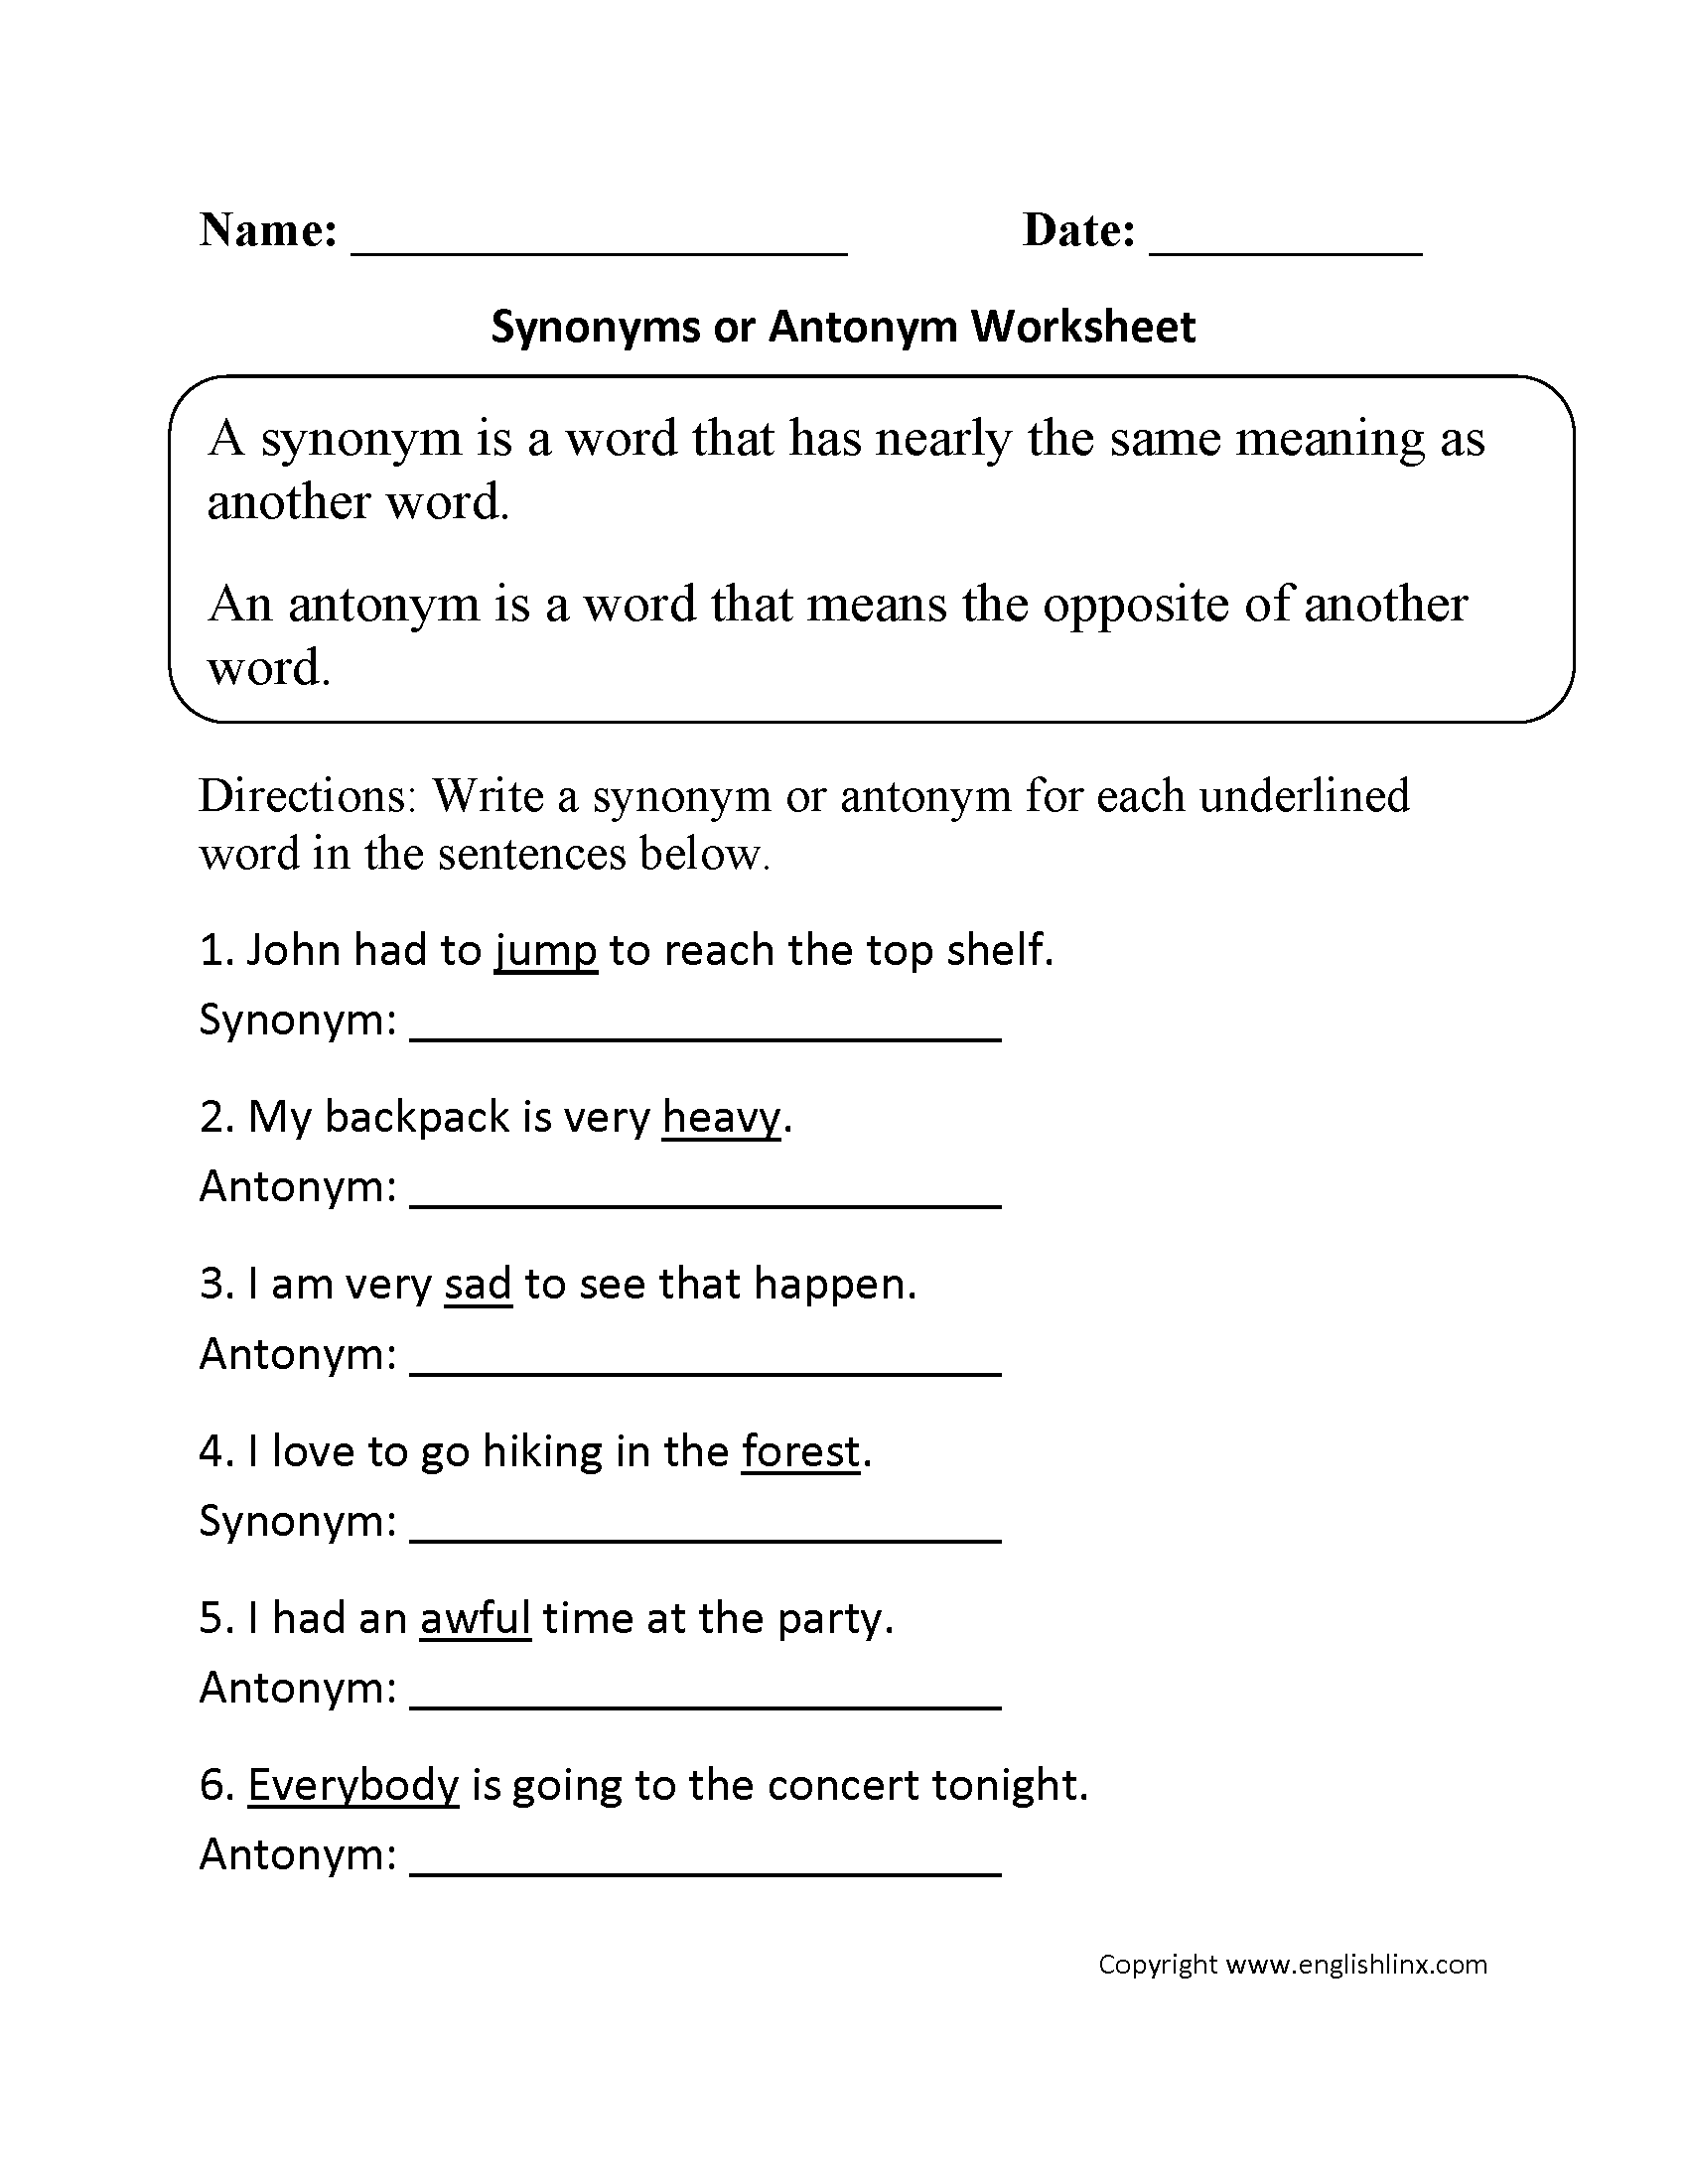 Printables Synonyms And Antonyms Worksheets vocabulary worksheets synonym and antonym or worksheet